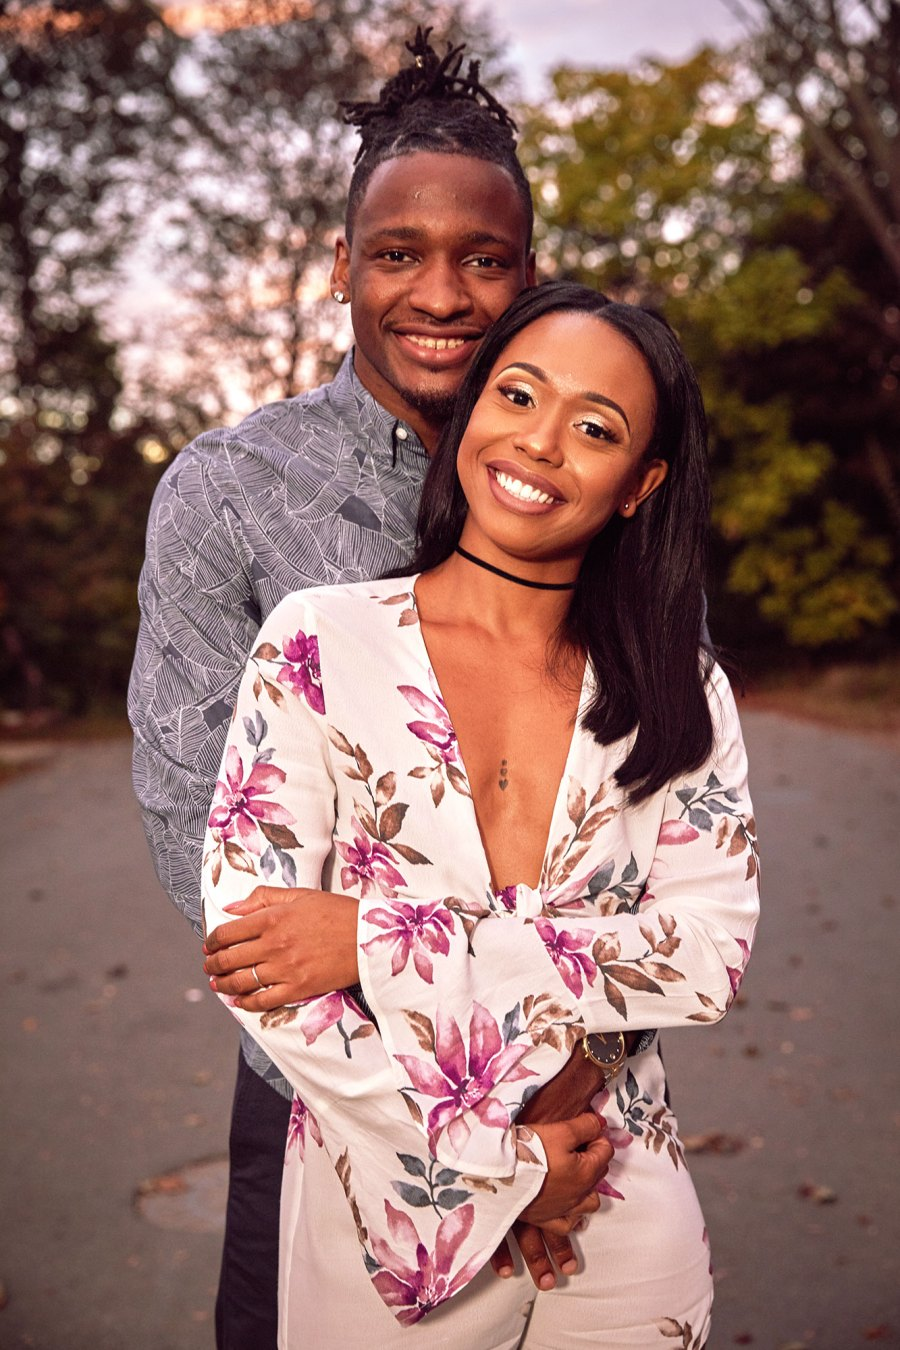 Jephte and Shawniece married at first sight